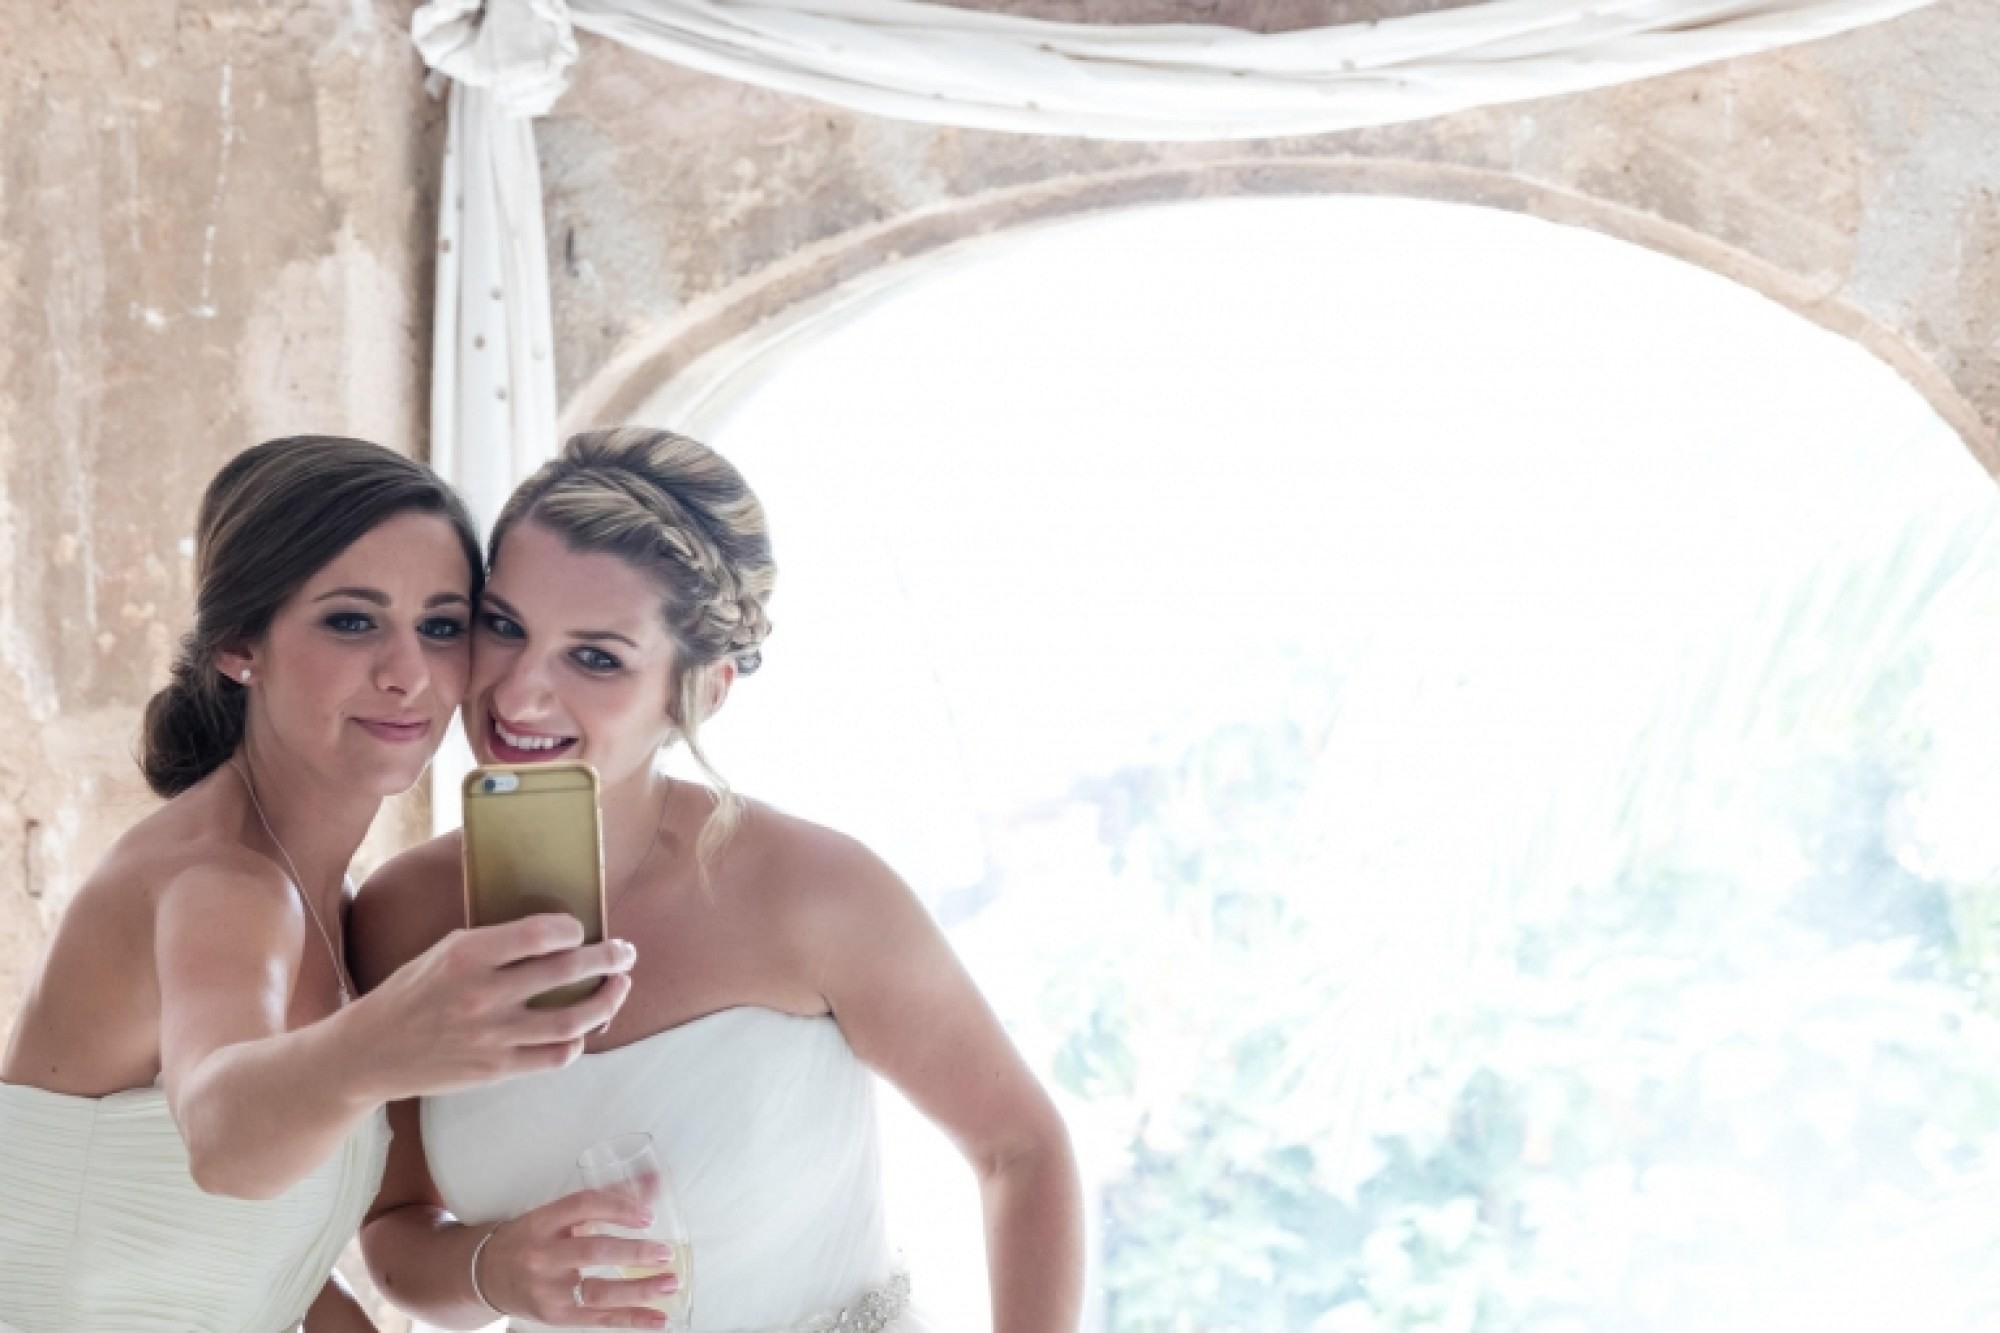 The bride and bridesmaid share a selfie at Hotel Can Vedera in Mallorca